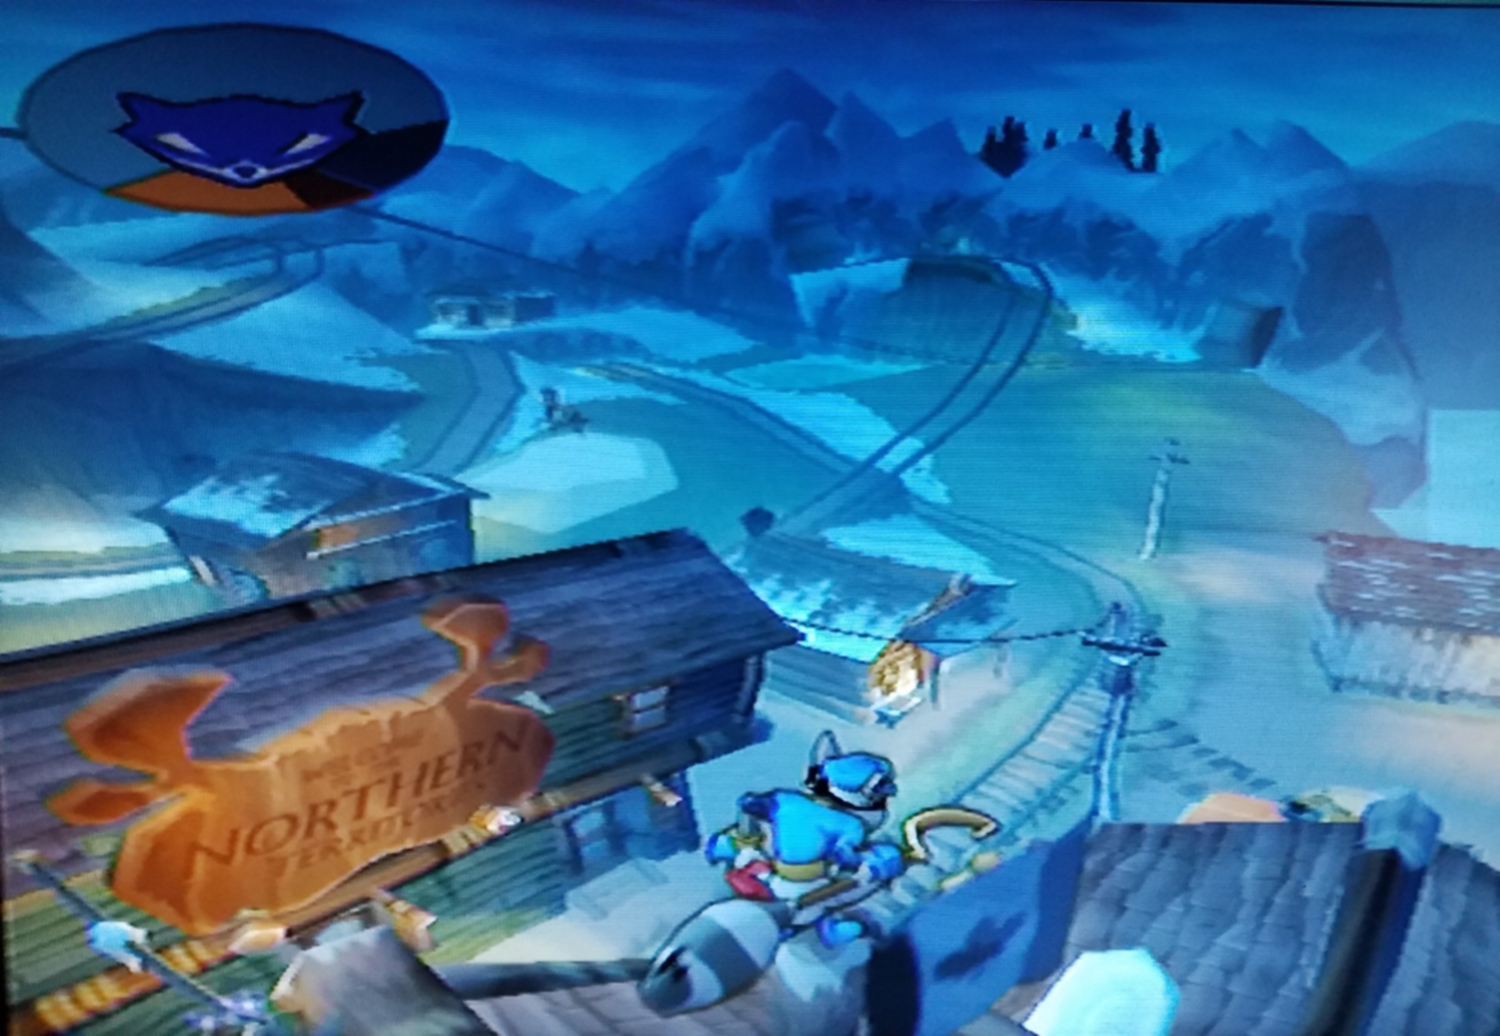 """Sly Cooper surveys the Canadian landscape in Episode 6: """"He Who Tames the Iron Horse"""" in Sly 2: Band of Thieves."""